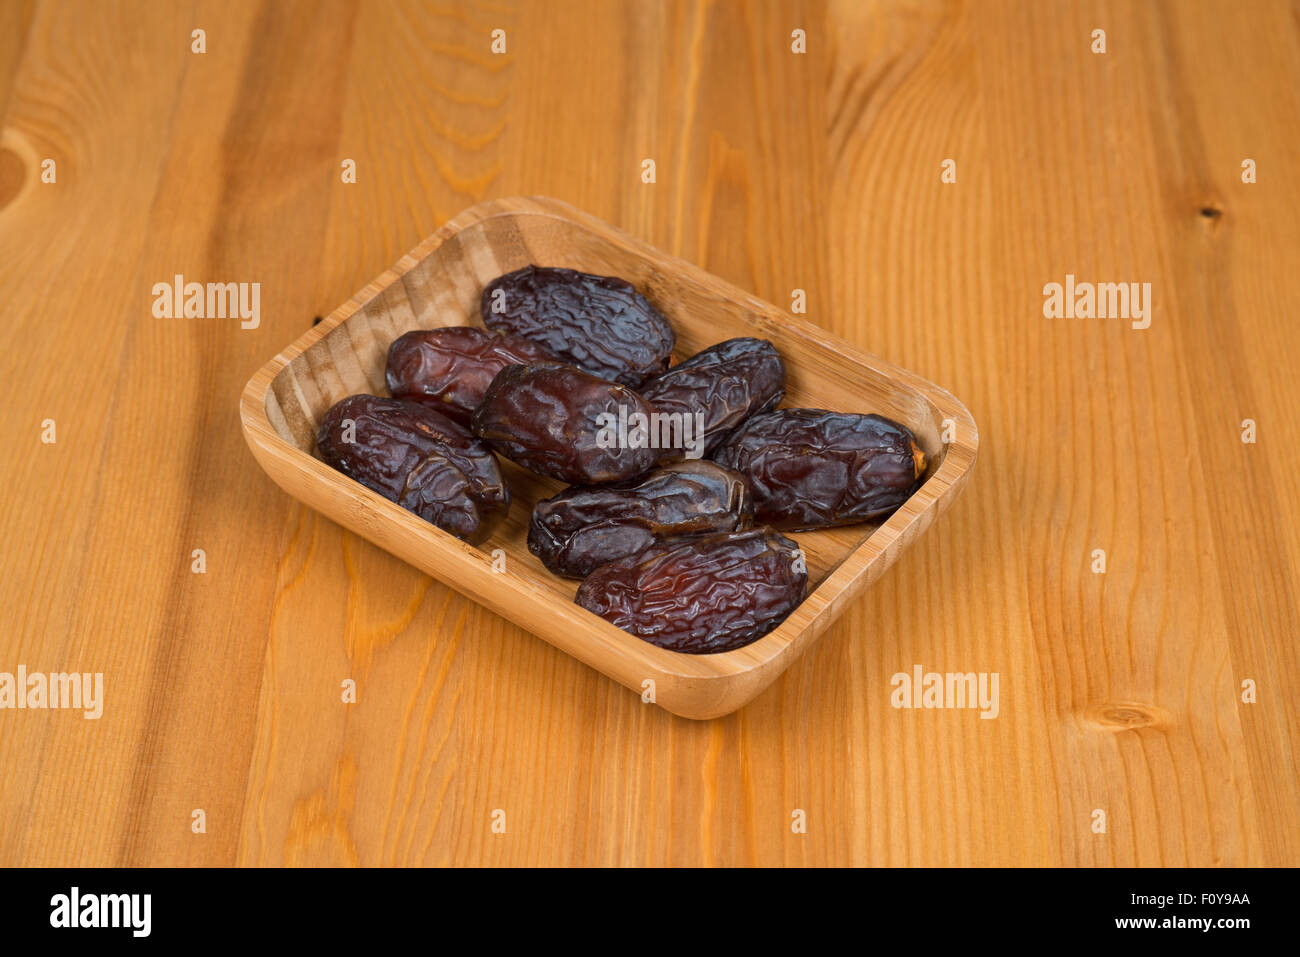 Bowl of dried dates on a wooden background - Stock Image